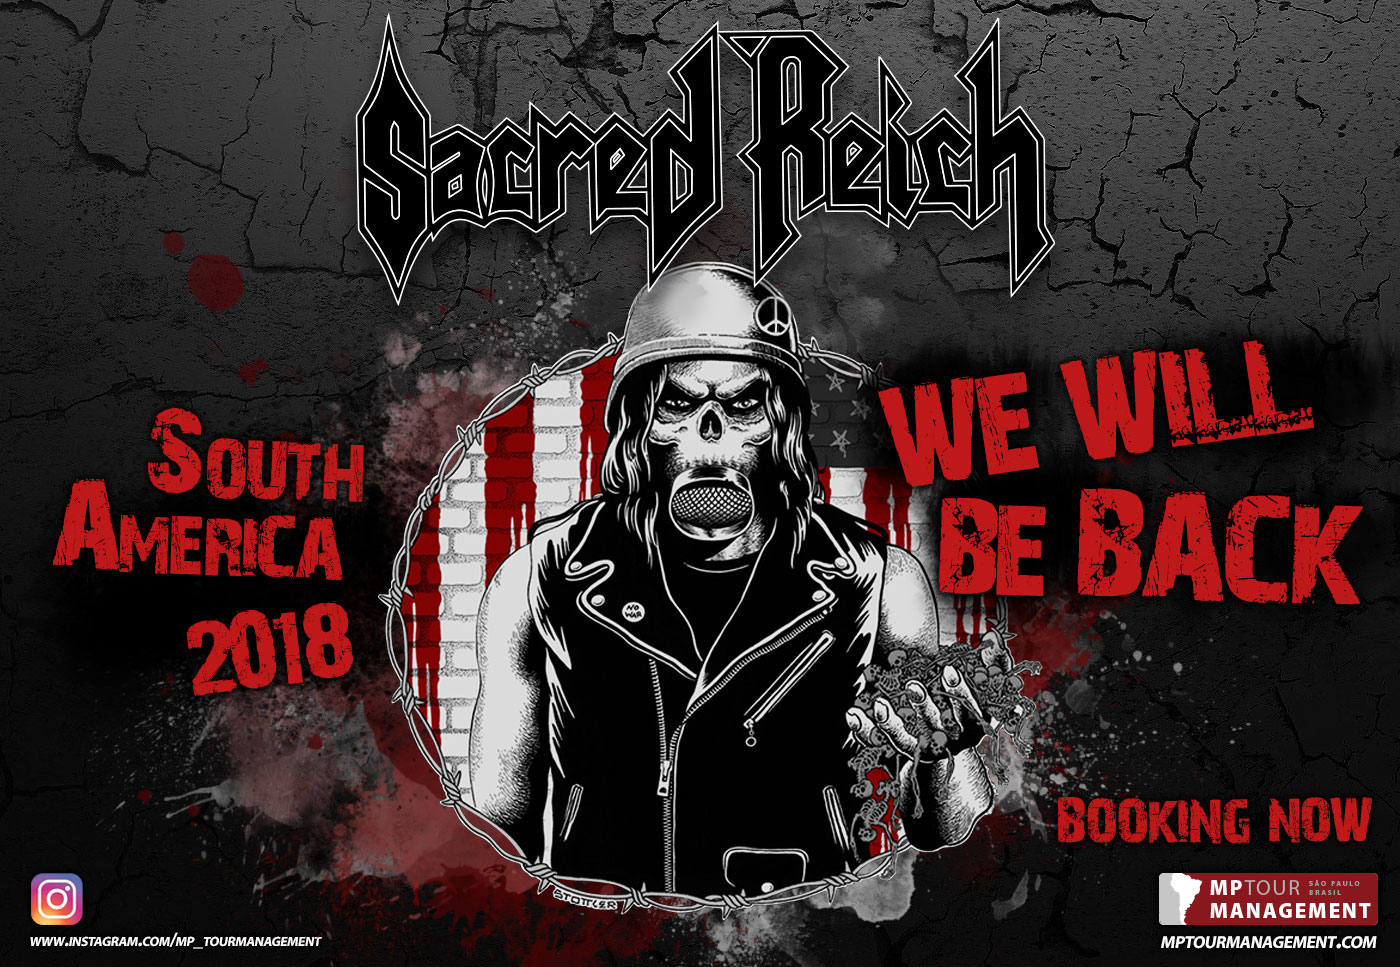 Sacred Reich - South America 2018